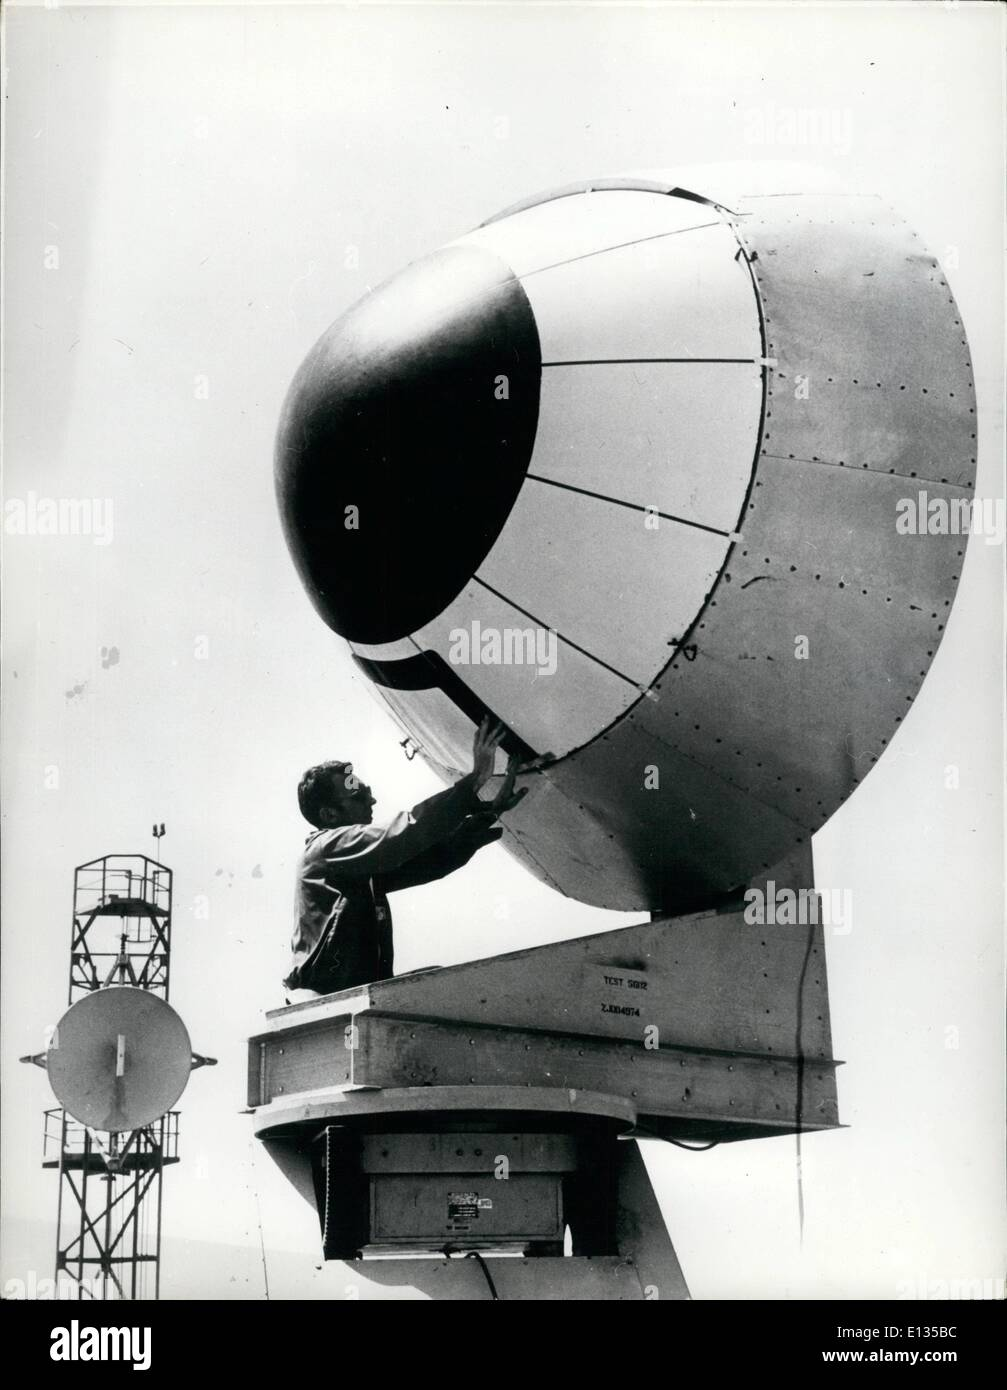 Feb. 26, 2012 - Test For A Mighty Sensitive Snout: An advanced radar system is seen being tested for the new super giant Douglas D.C. 10 Jetcraft. Due to came into service in 1971, the plane will have a sensitive radar system in its 7-ft. diameter nose cone. Capable of radiating 60,000 watts it will have a beam range of 300 nautical miles that will show weather pictures well in advance of the plane's course. Currently being built at Santa Monica, California, the DC 10 will carry up to 345 passengers. Photo Shows DC 10 nose cone housing the long-distance radar system - Stock Image